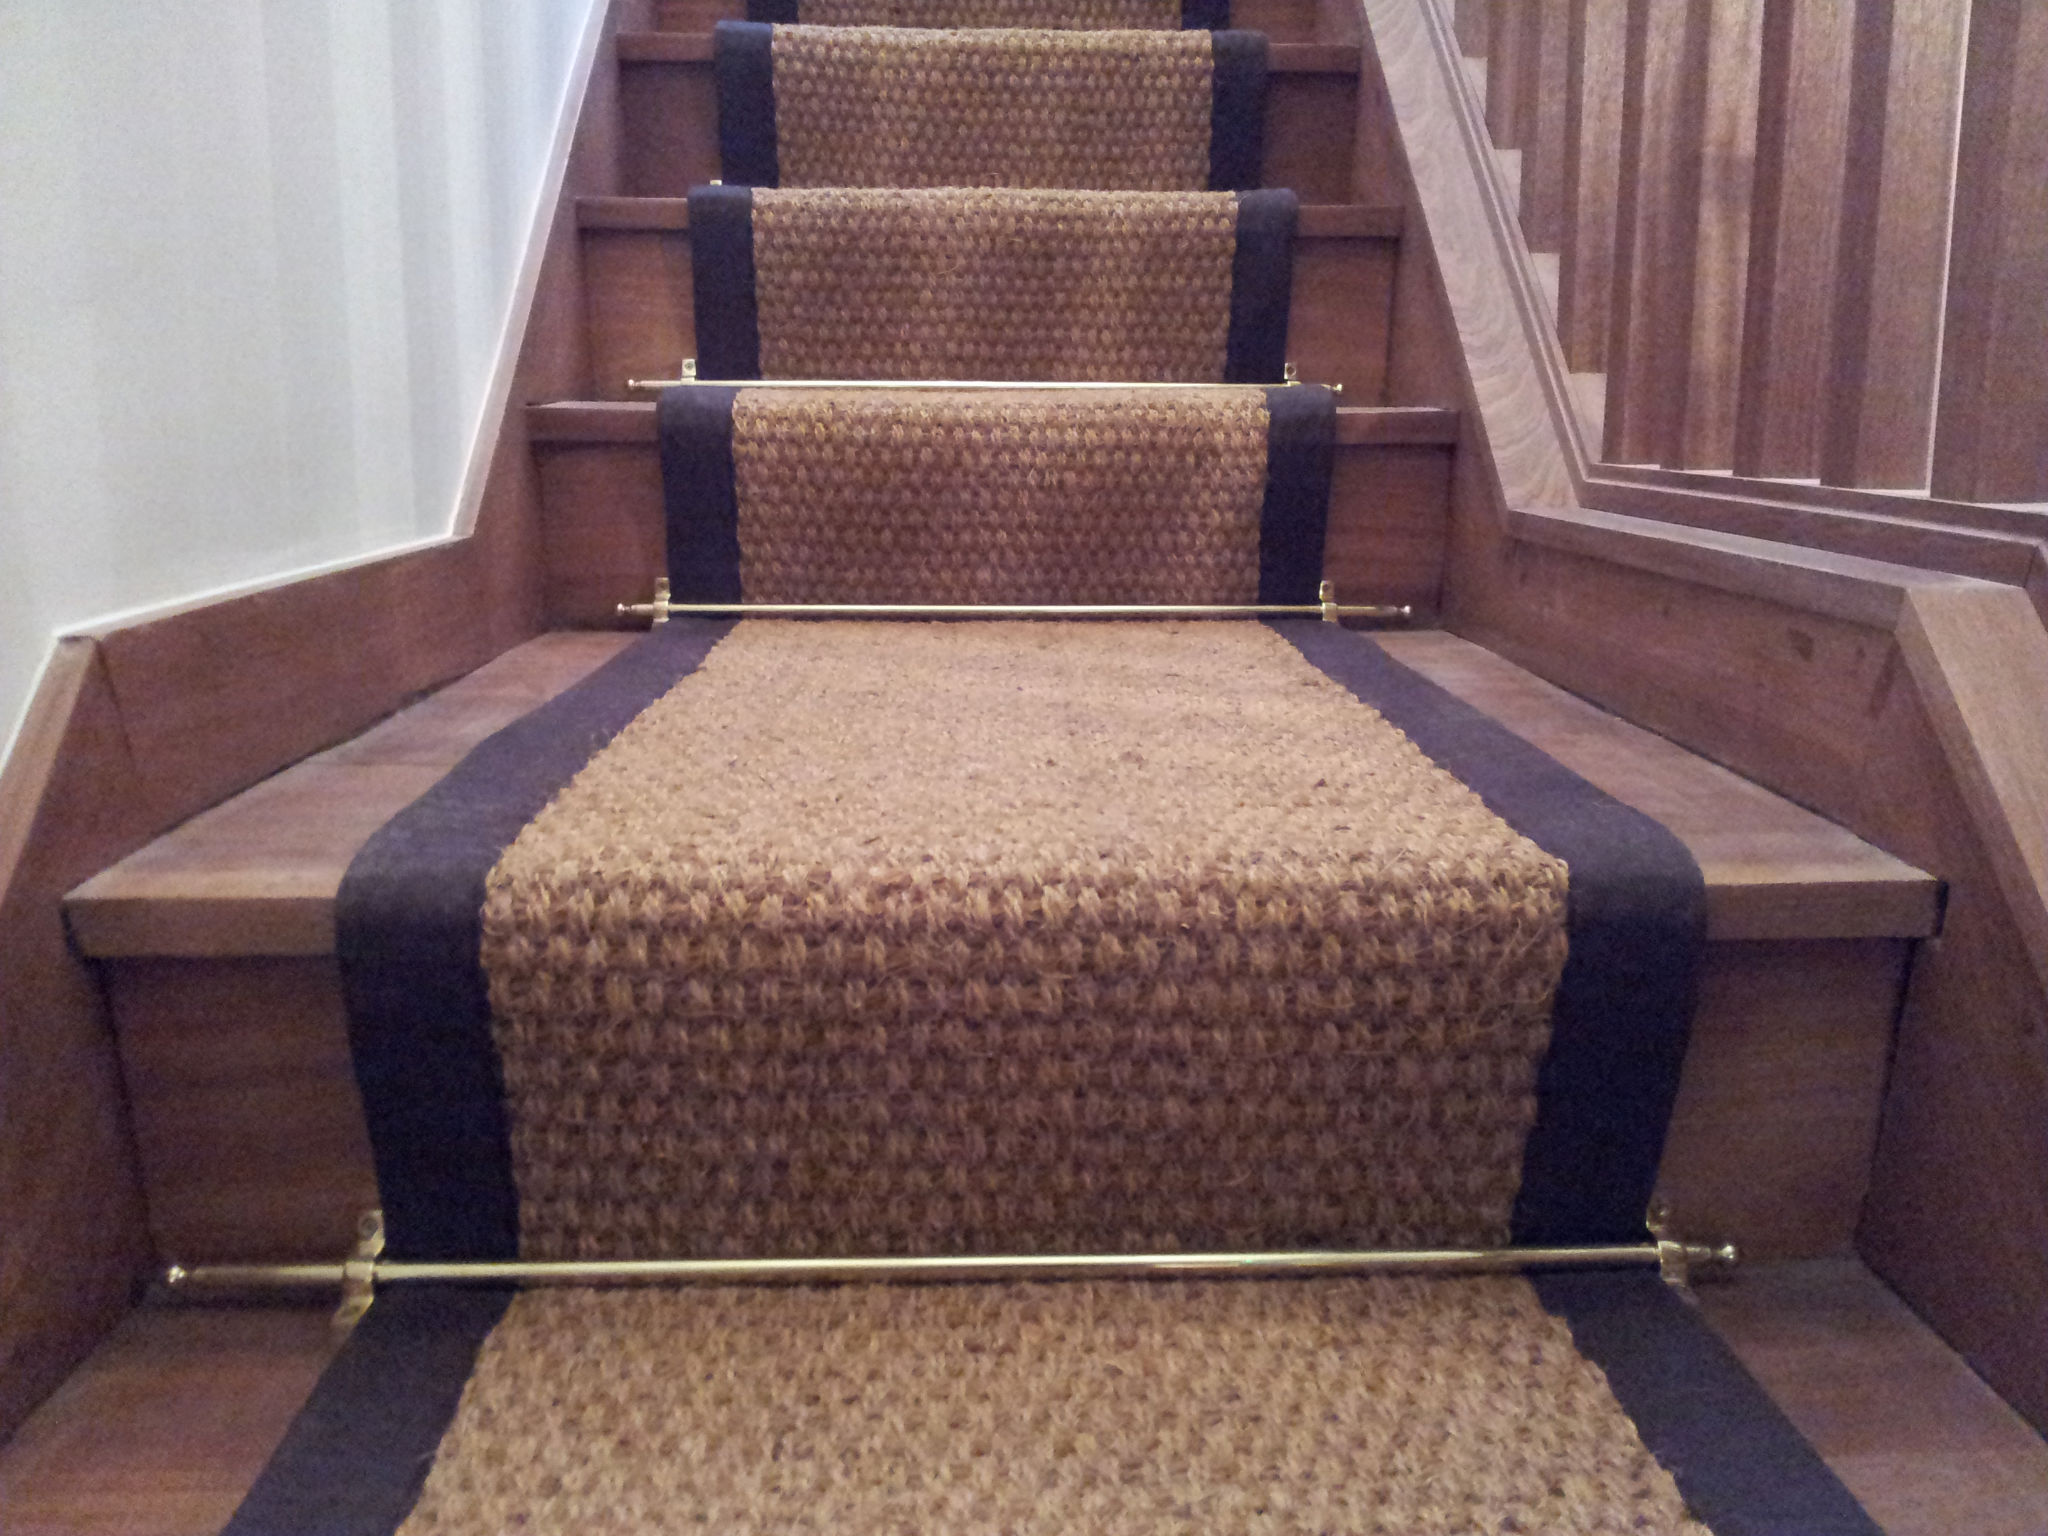 Stair Runner Gallery - Wholesale Stair Runner u0026 Carpets in UK and Ireland